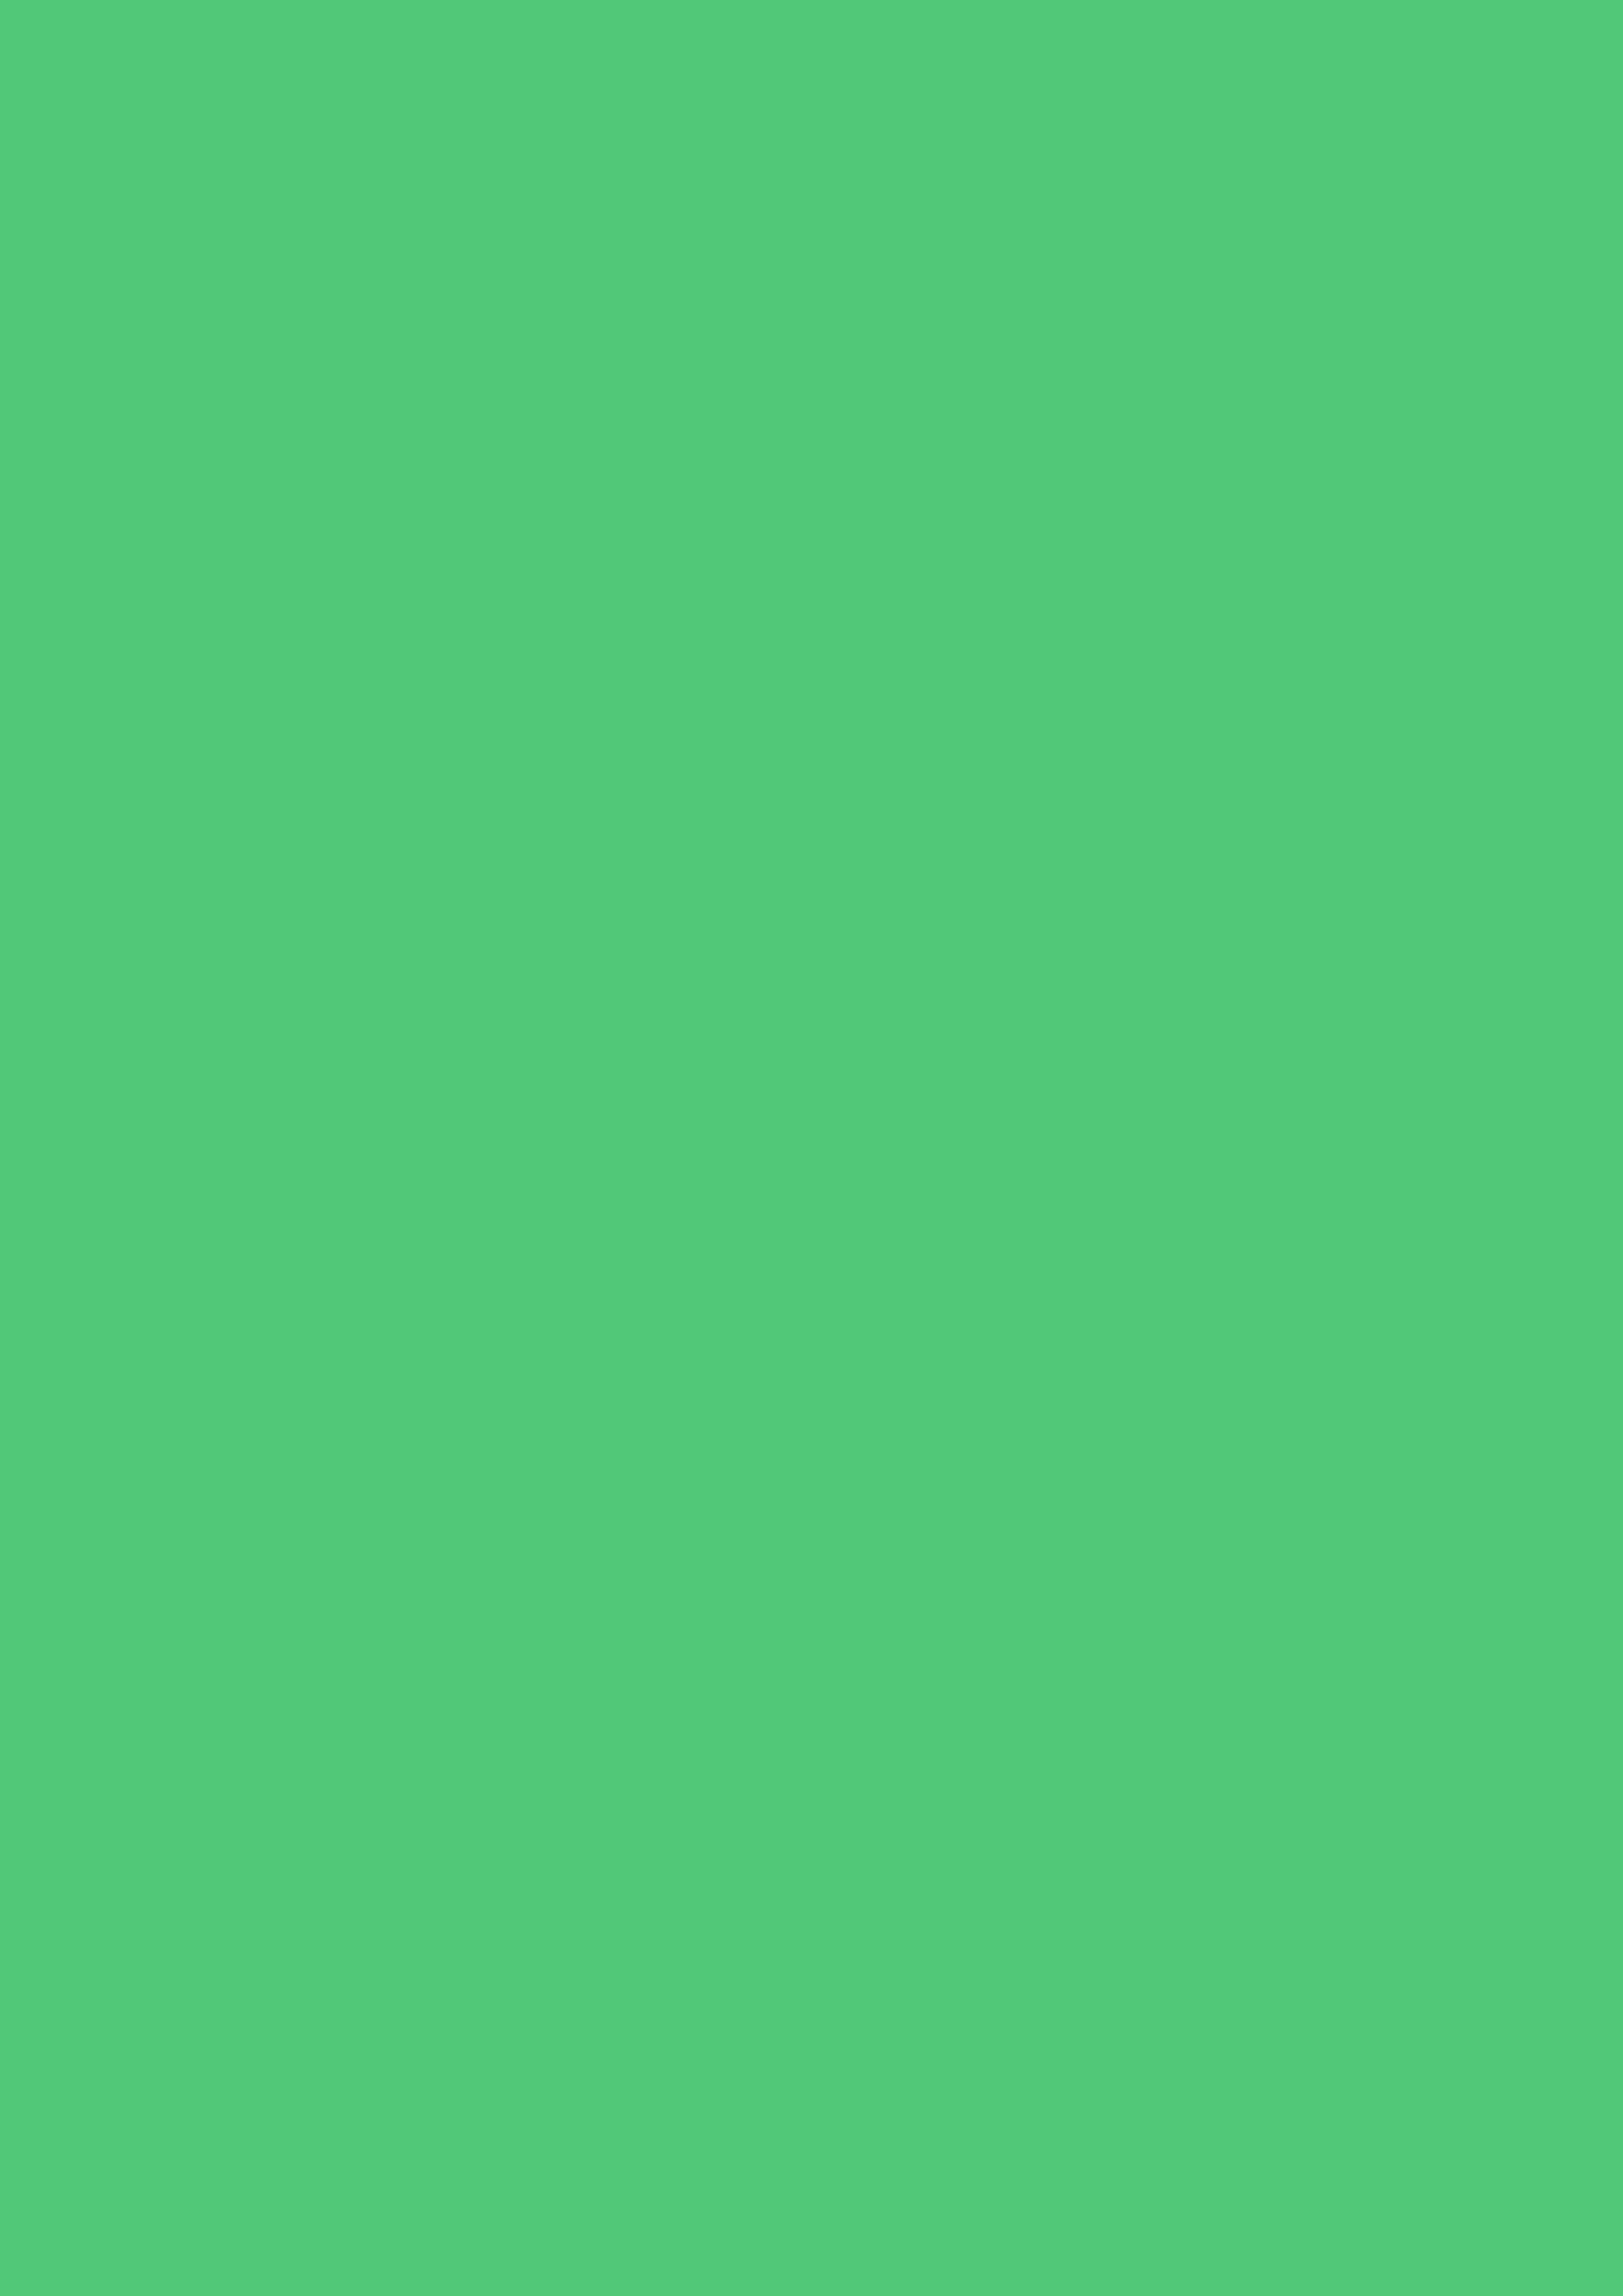 2480x3508 Paris Green Solid Color Background